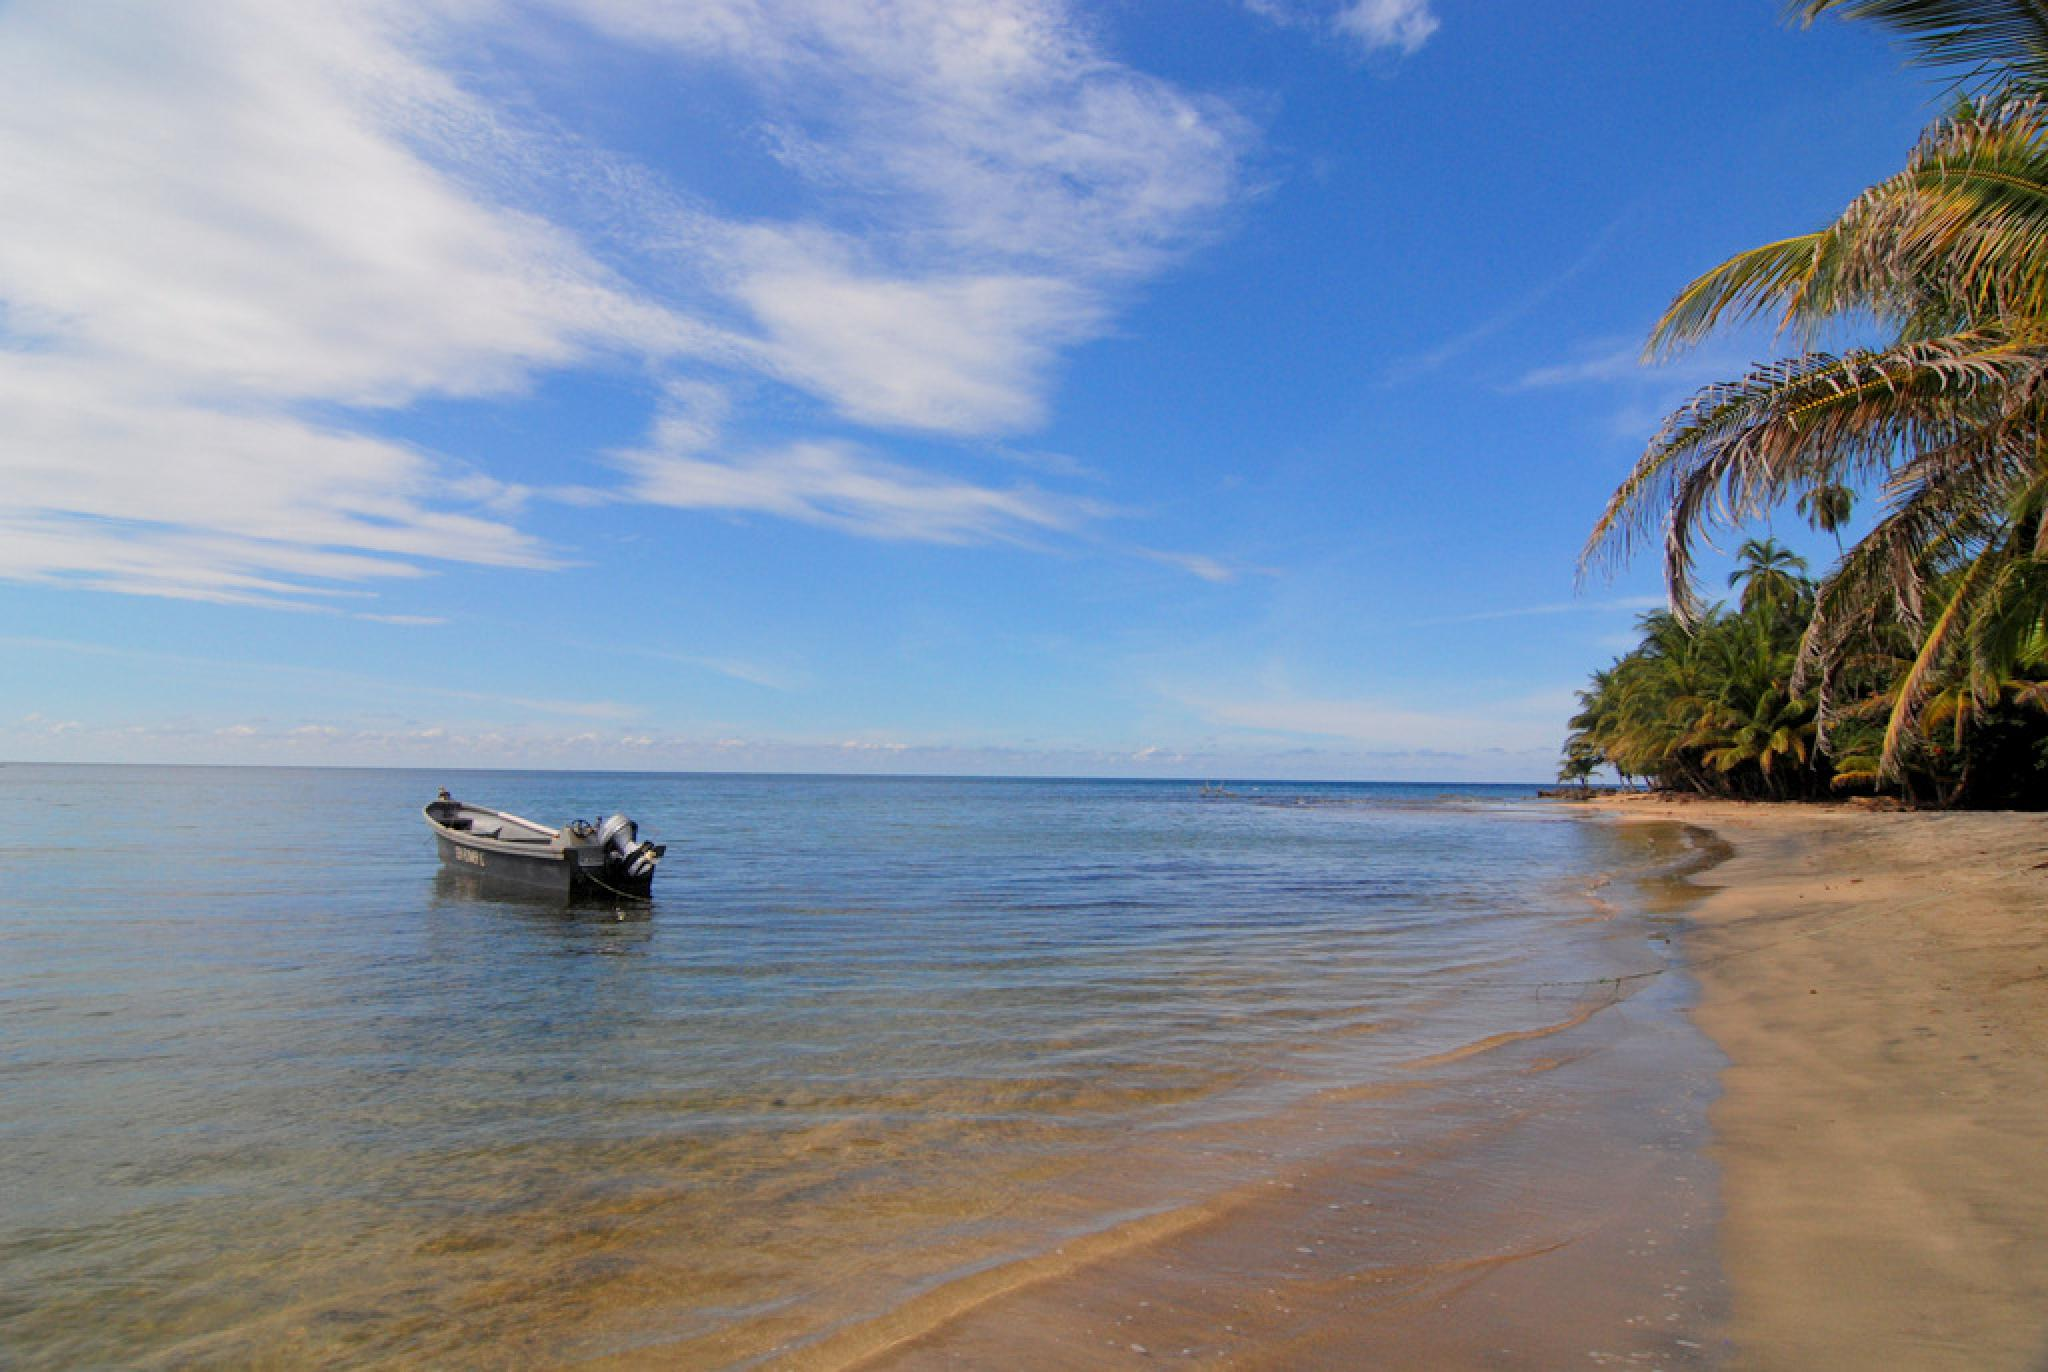 Puerto Viejo Caribbean Costa Rica 2020 Travel Guide Anywhere